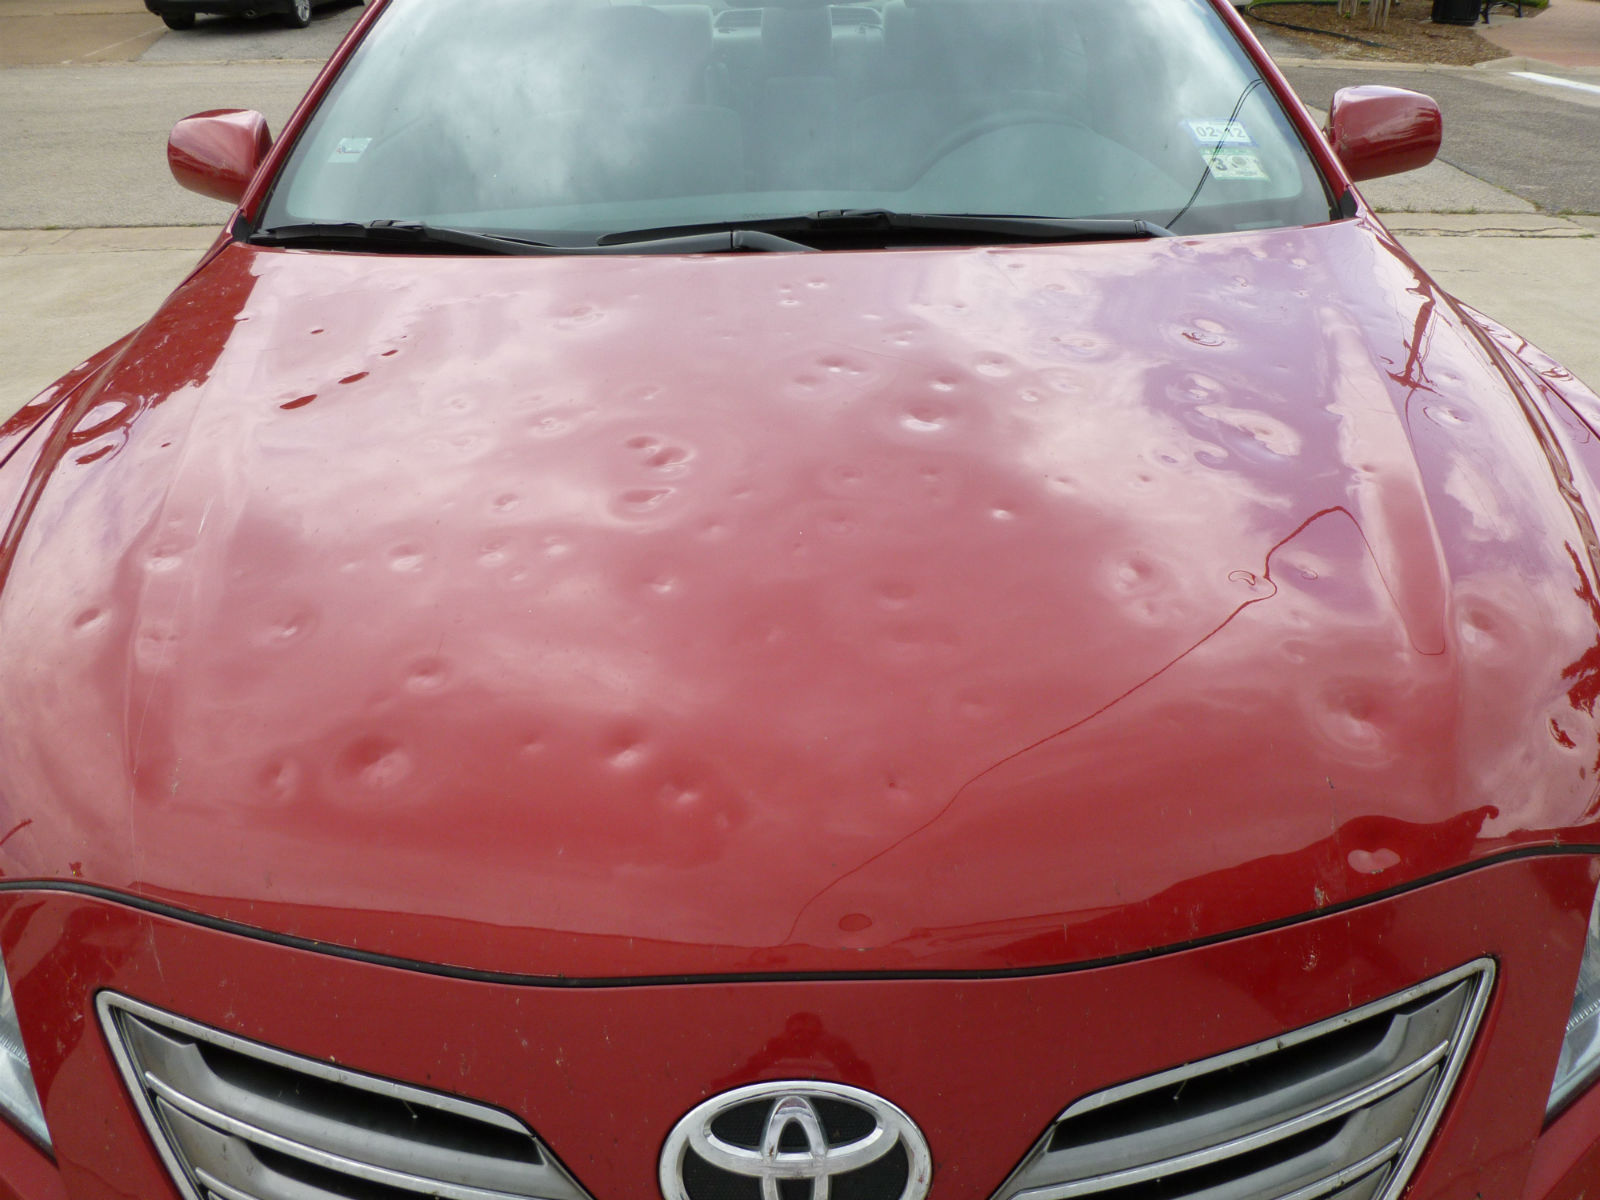 Toyota Camry Hood Pummeled By Baseball Sized Hail Dent